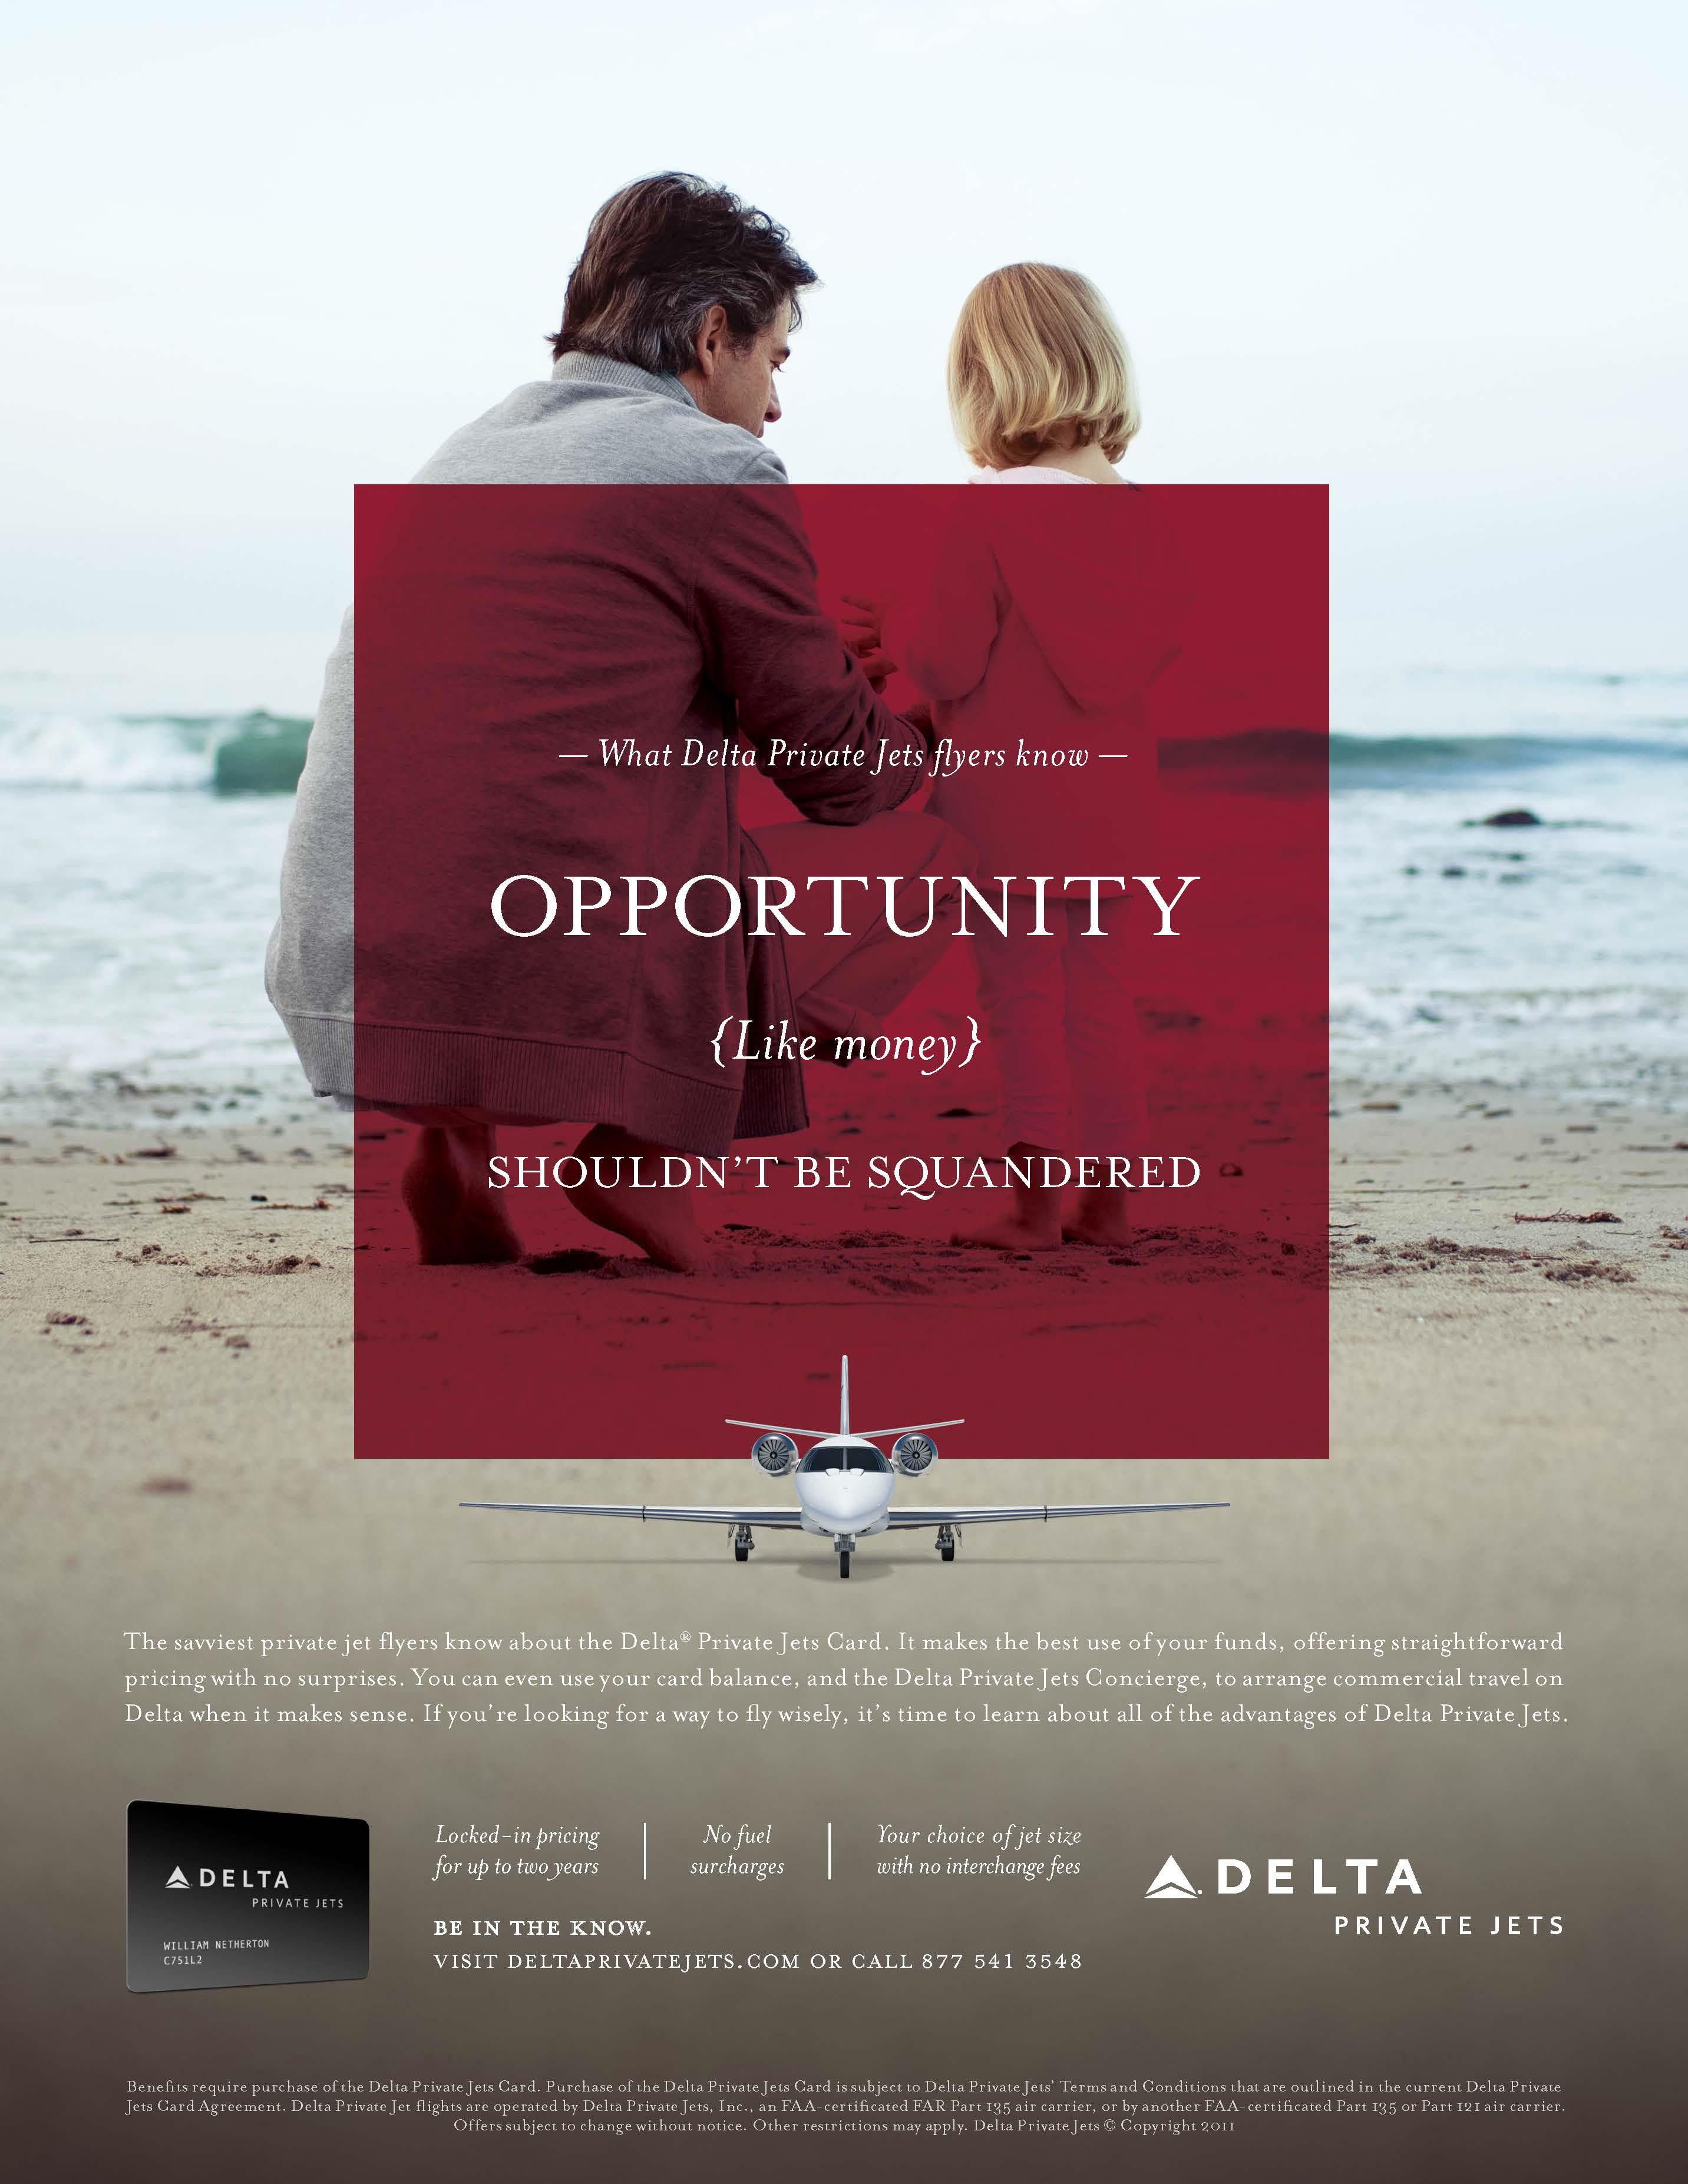 """What Delta Private Jets Flyers Know"" Campaign"